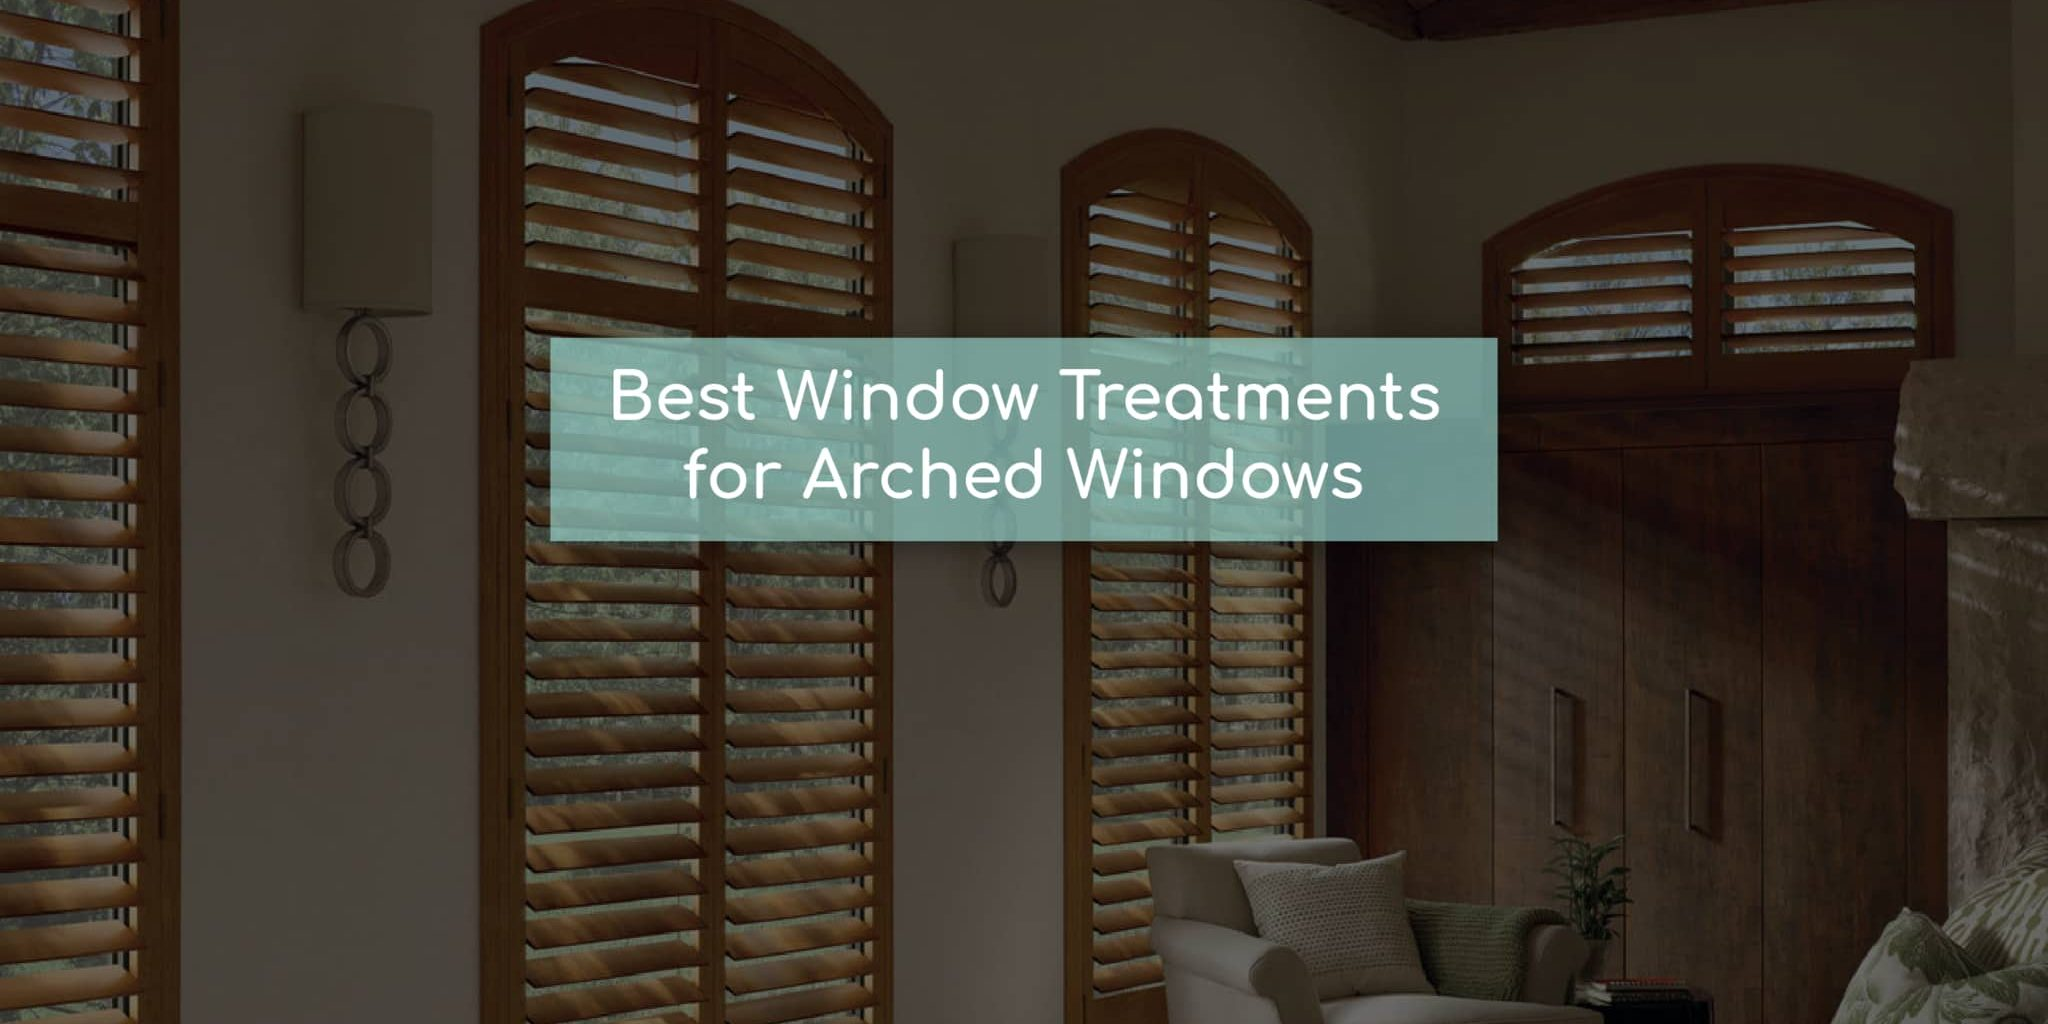 best window treatments for arched windows - Starlite blog